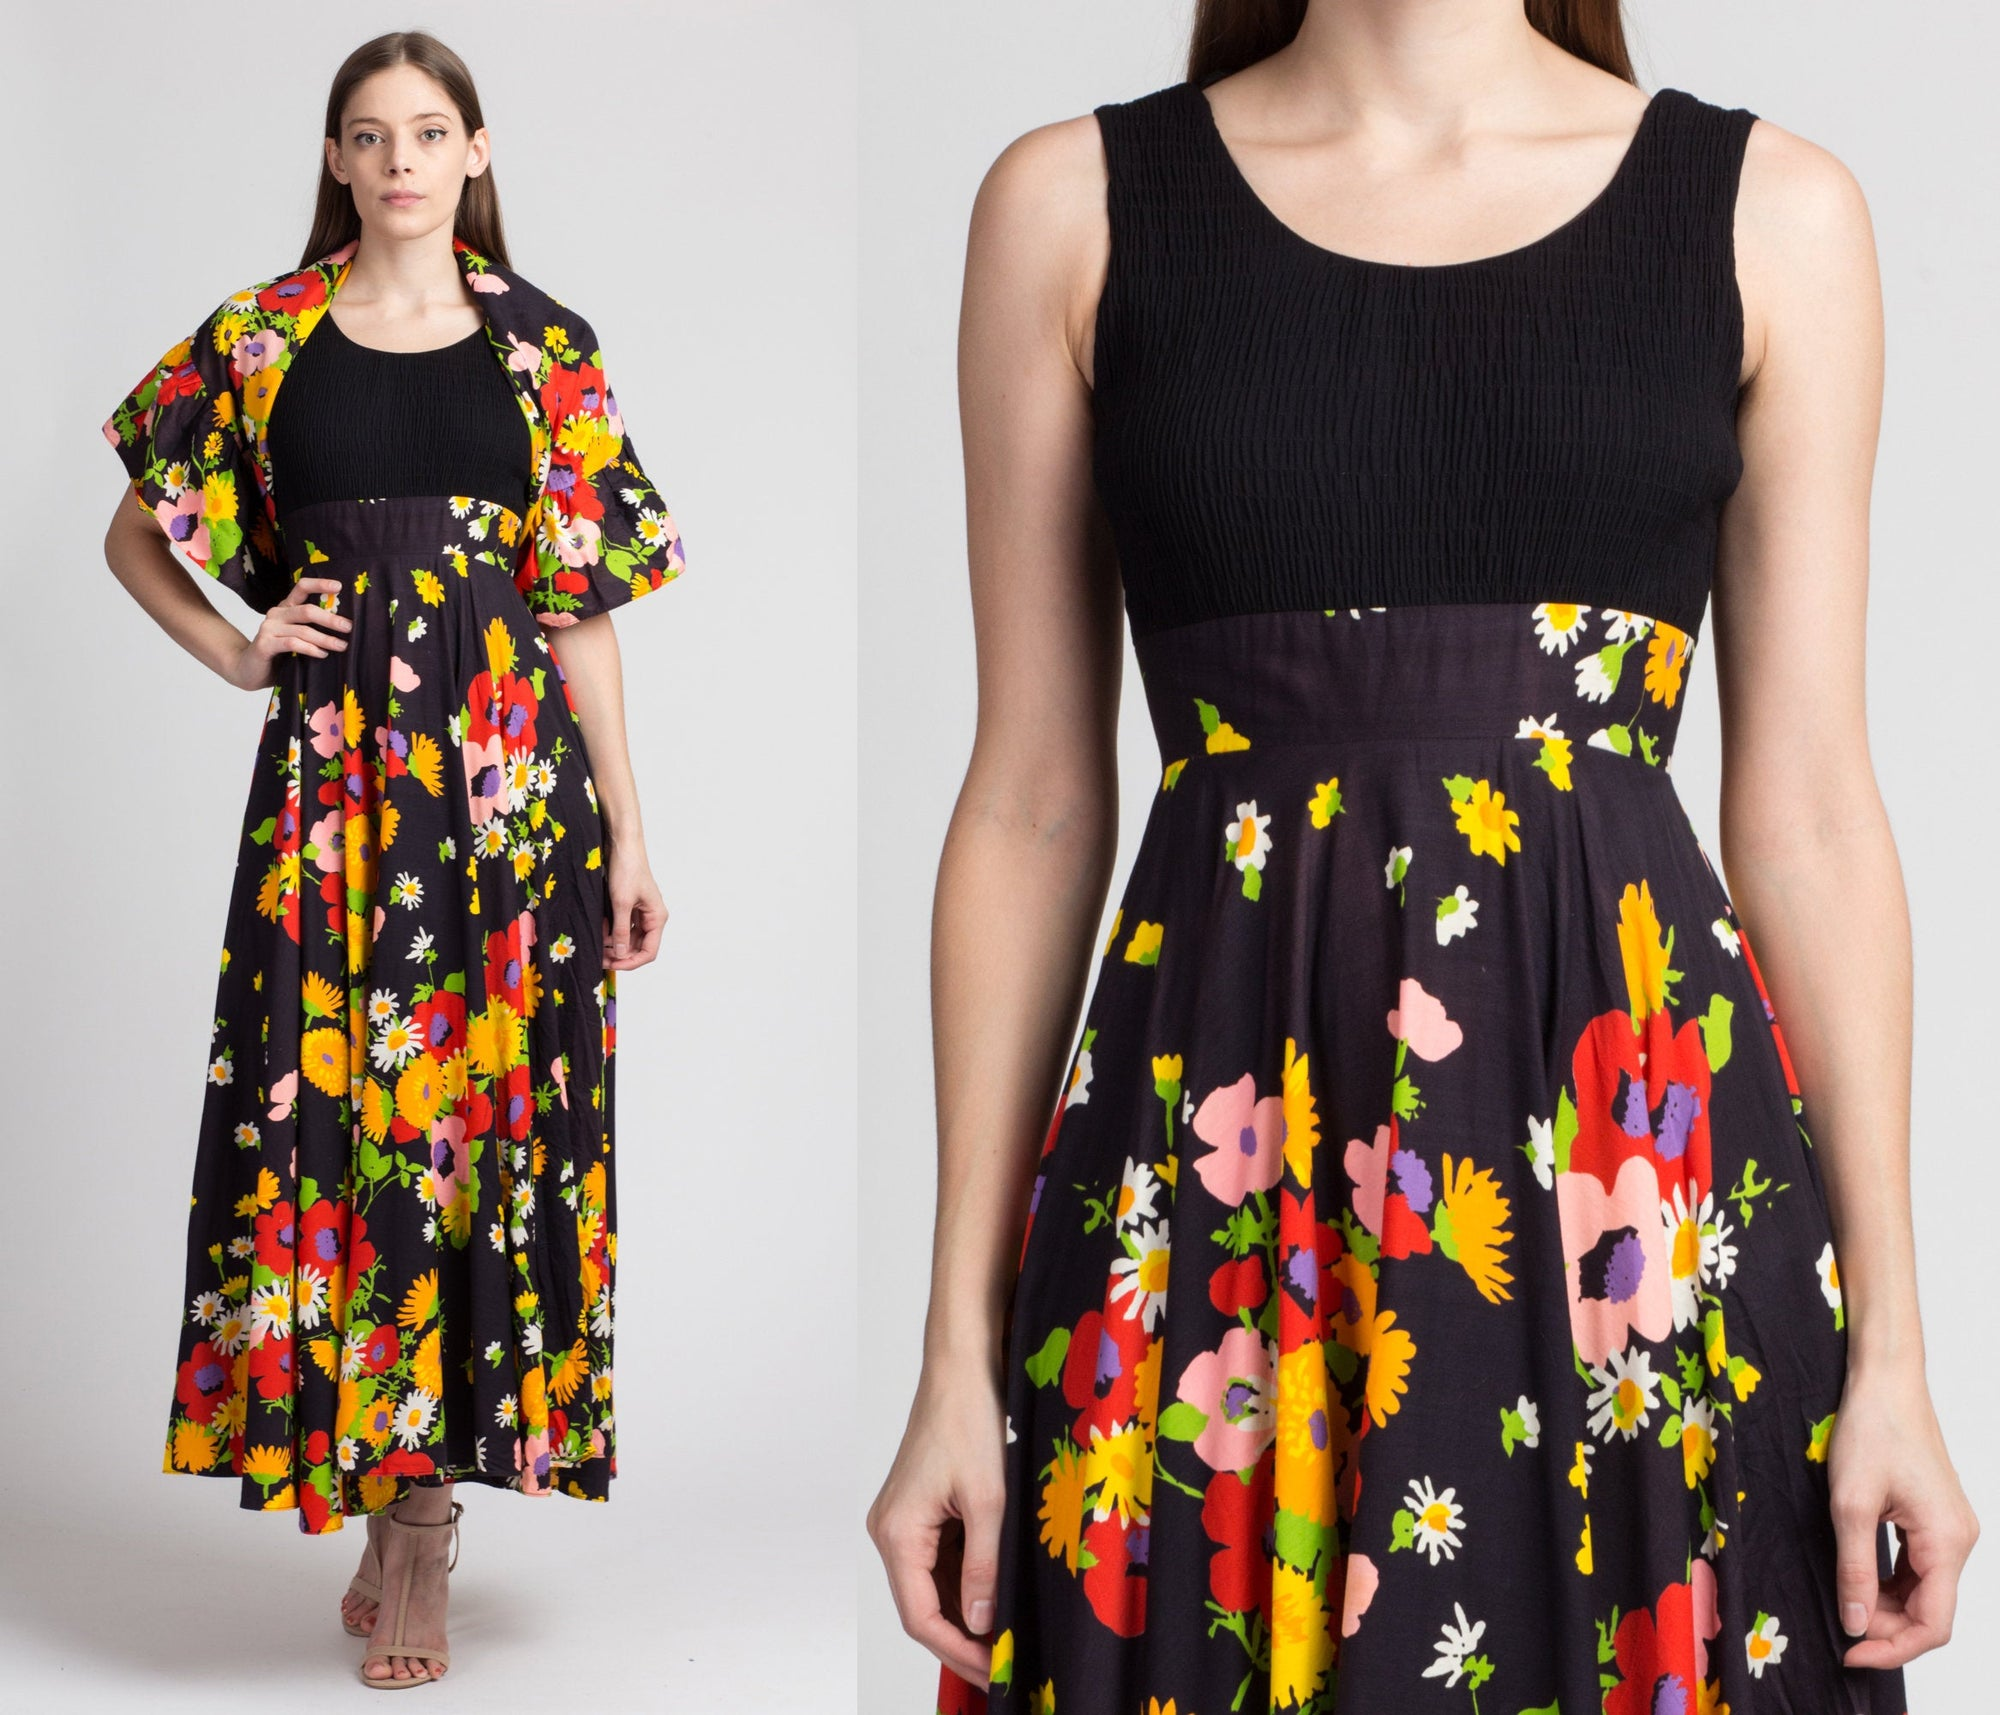 70s Floral Maxi Dress & Shawl - Extra Small